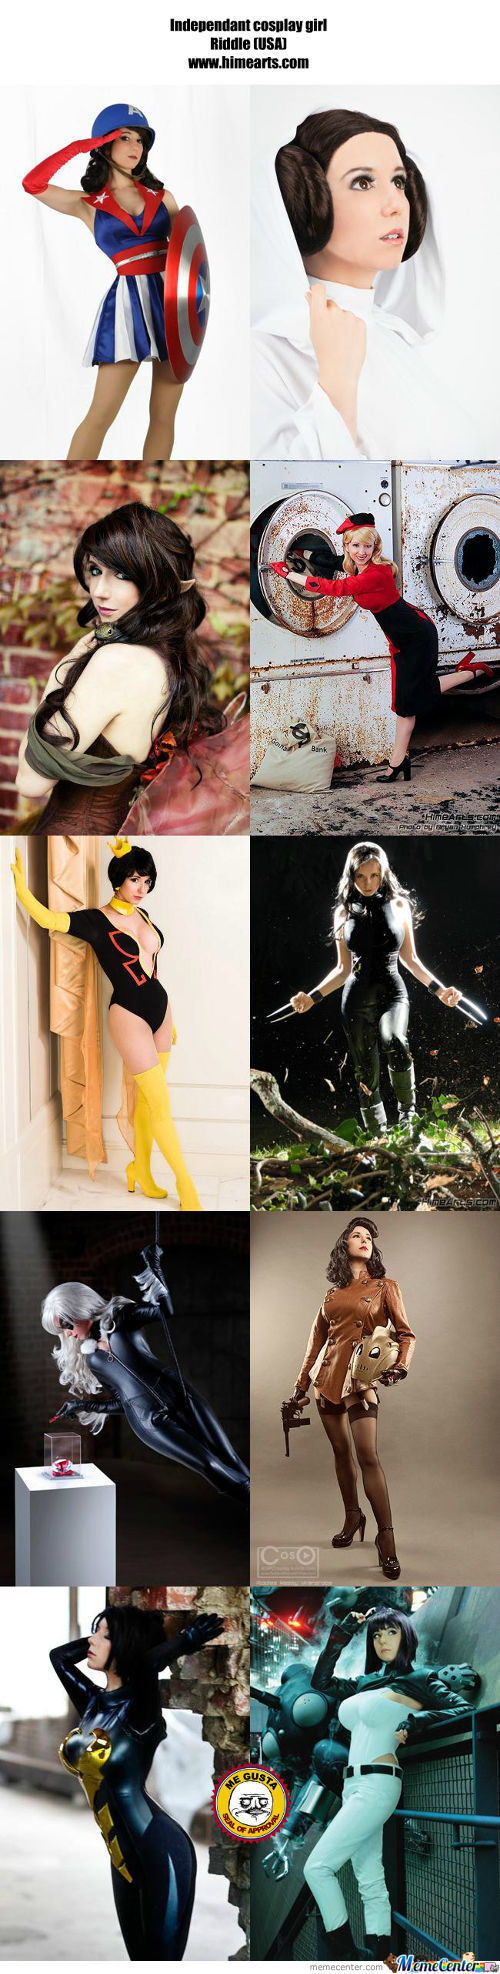 Cosplay Girl 92 : Riddle (Usa)